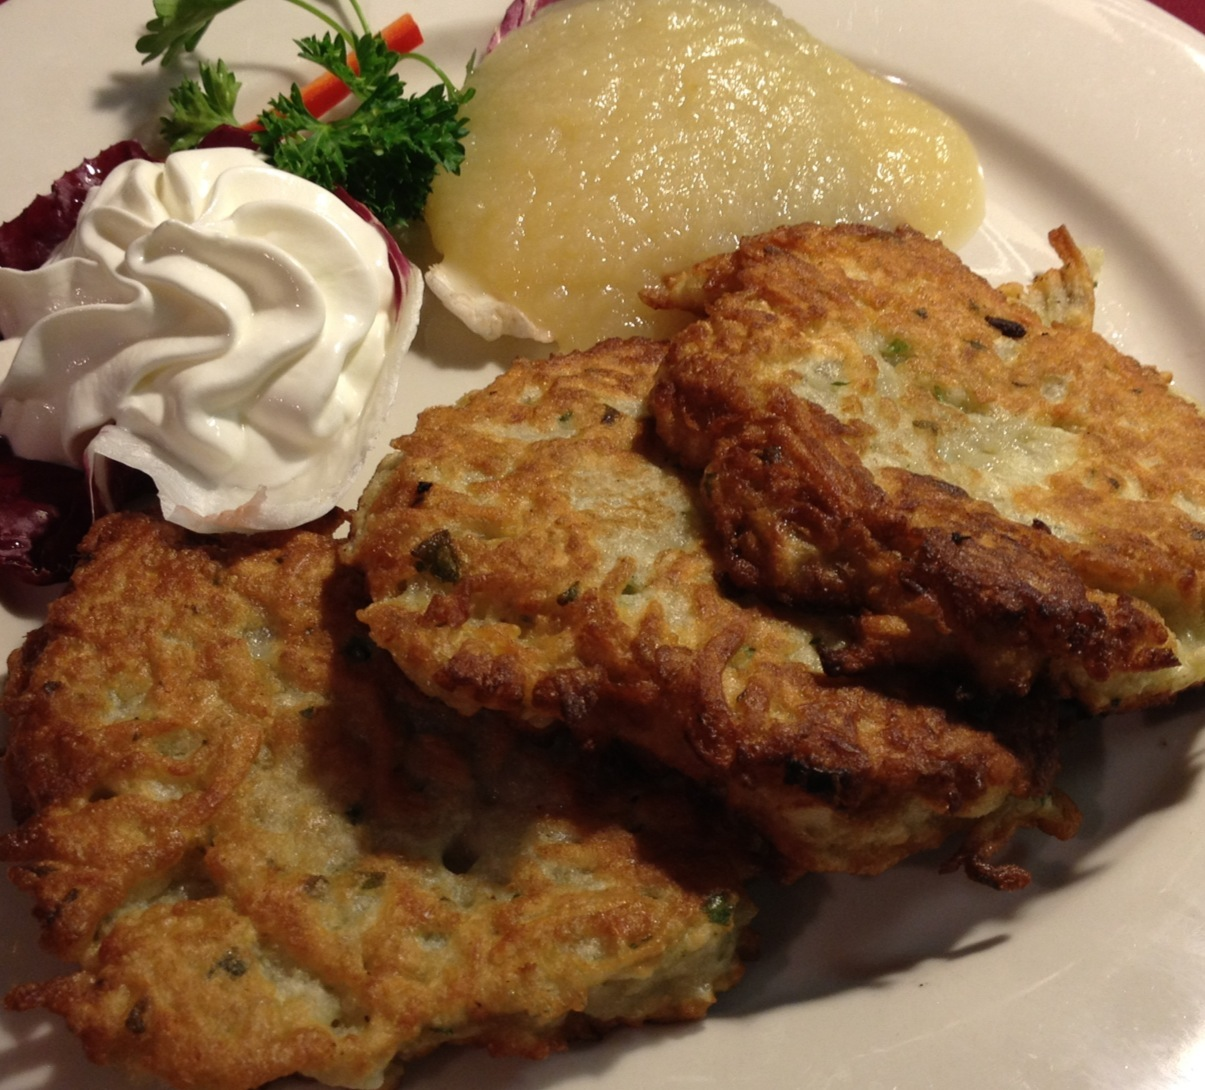 Potato Pancakes with Apple Sauce and Sour Cream